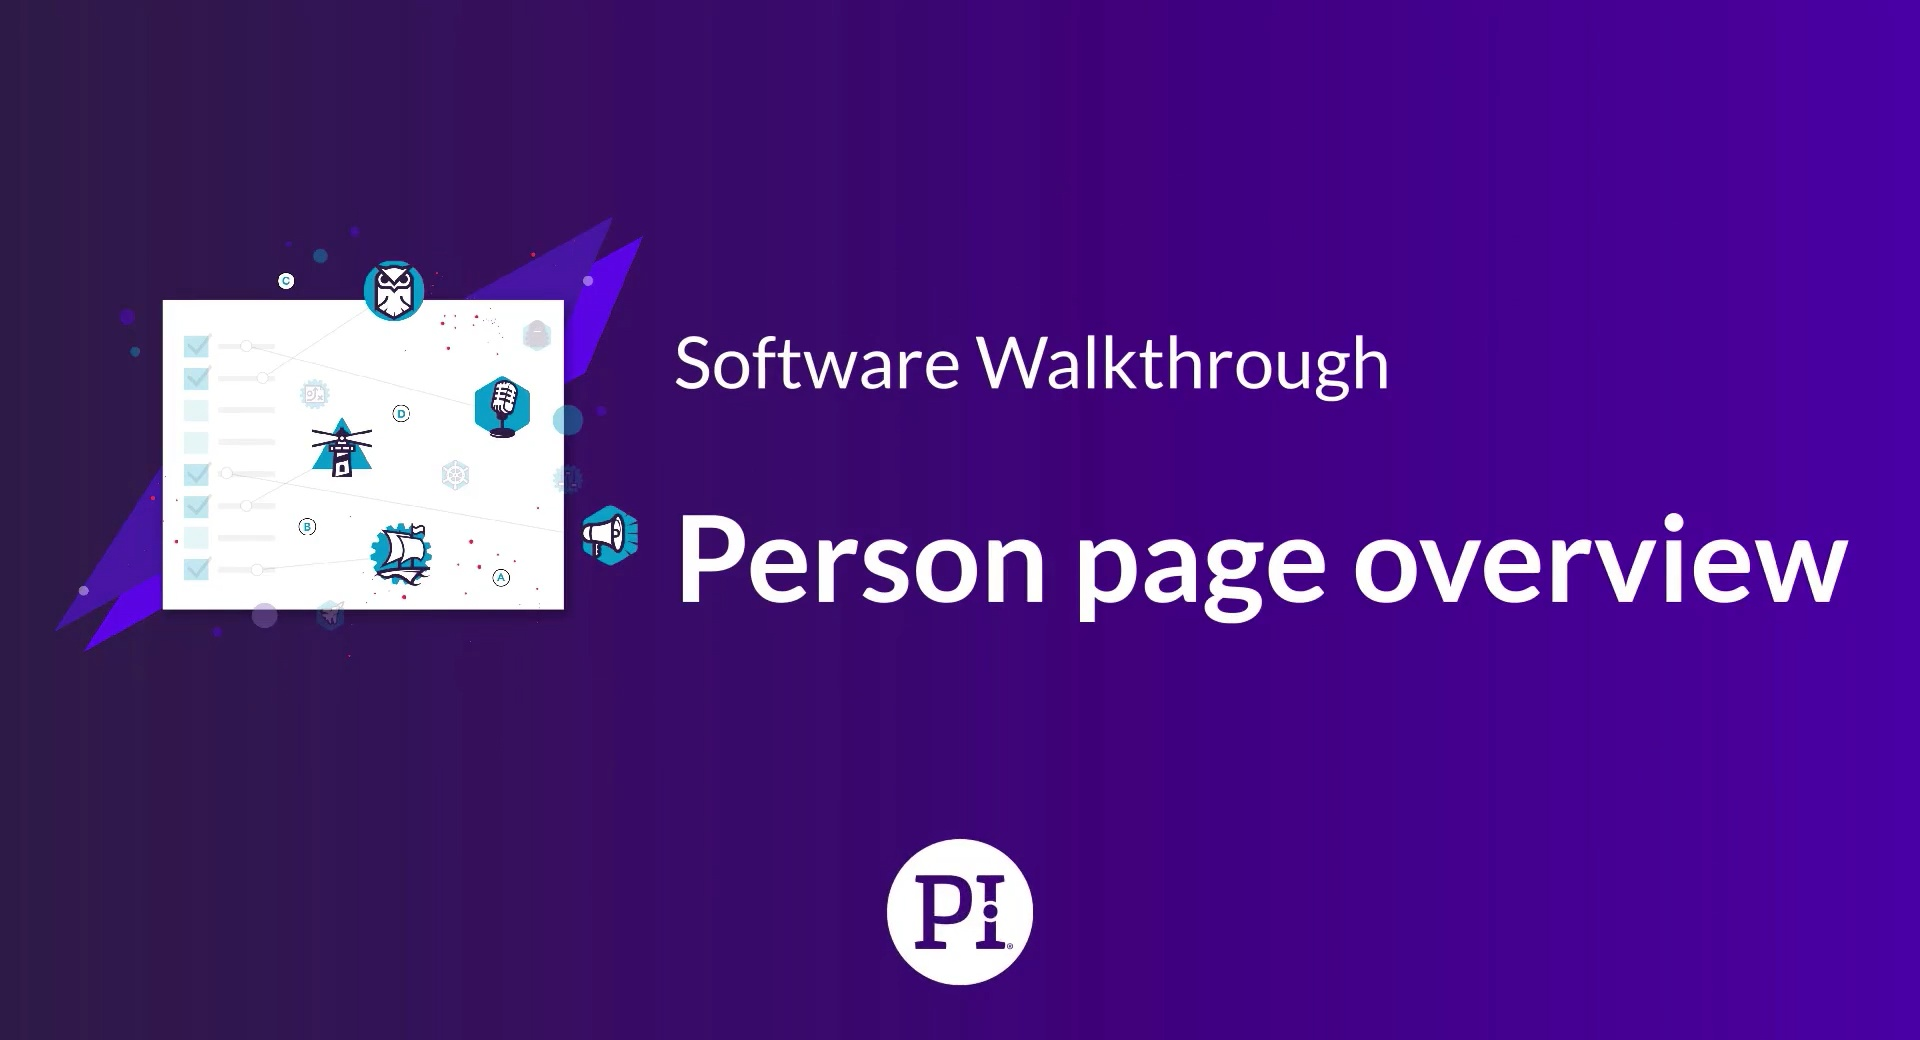 Person page overview